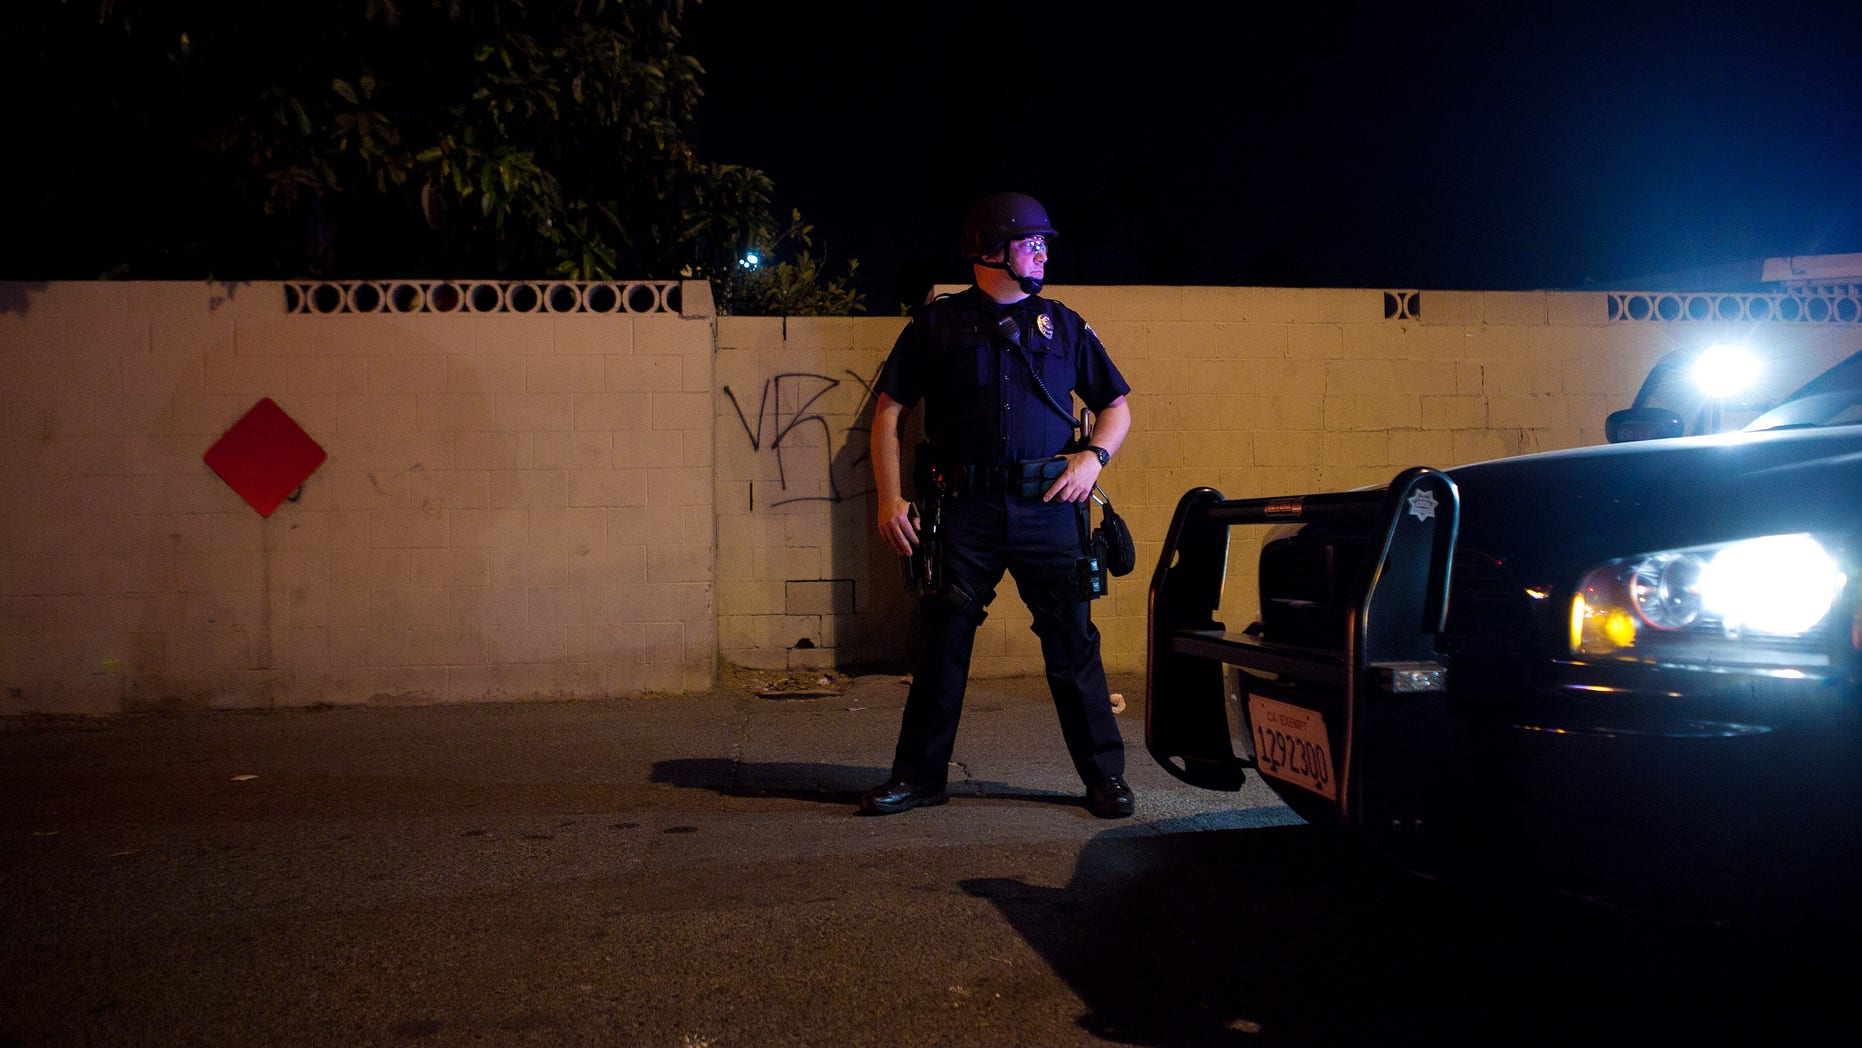 ANAHEIM, CA - JULY 25: A police officer stands guard after protesters set fire to a near by trash bin during a demonstration to show outrage for the fatal shooting of Manuel Angel Diaz, 25, at Anaheim City Hall on July 24, 2012 in Anaheim, California. Diaz was fatally shot on July 21 by an Anaheim police officer and has sparked days of protests by the angered community. (Photo by Jonathan Gibby/Getty Images)